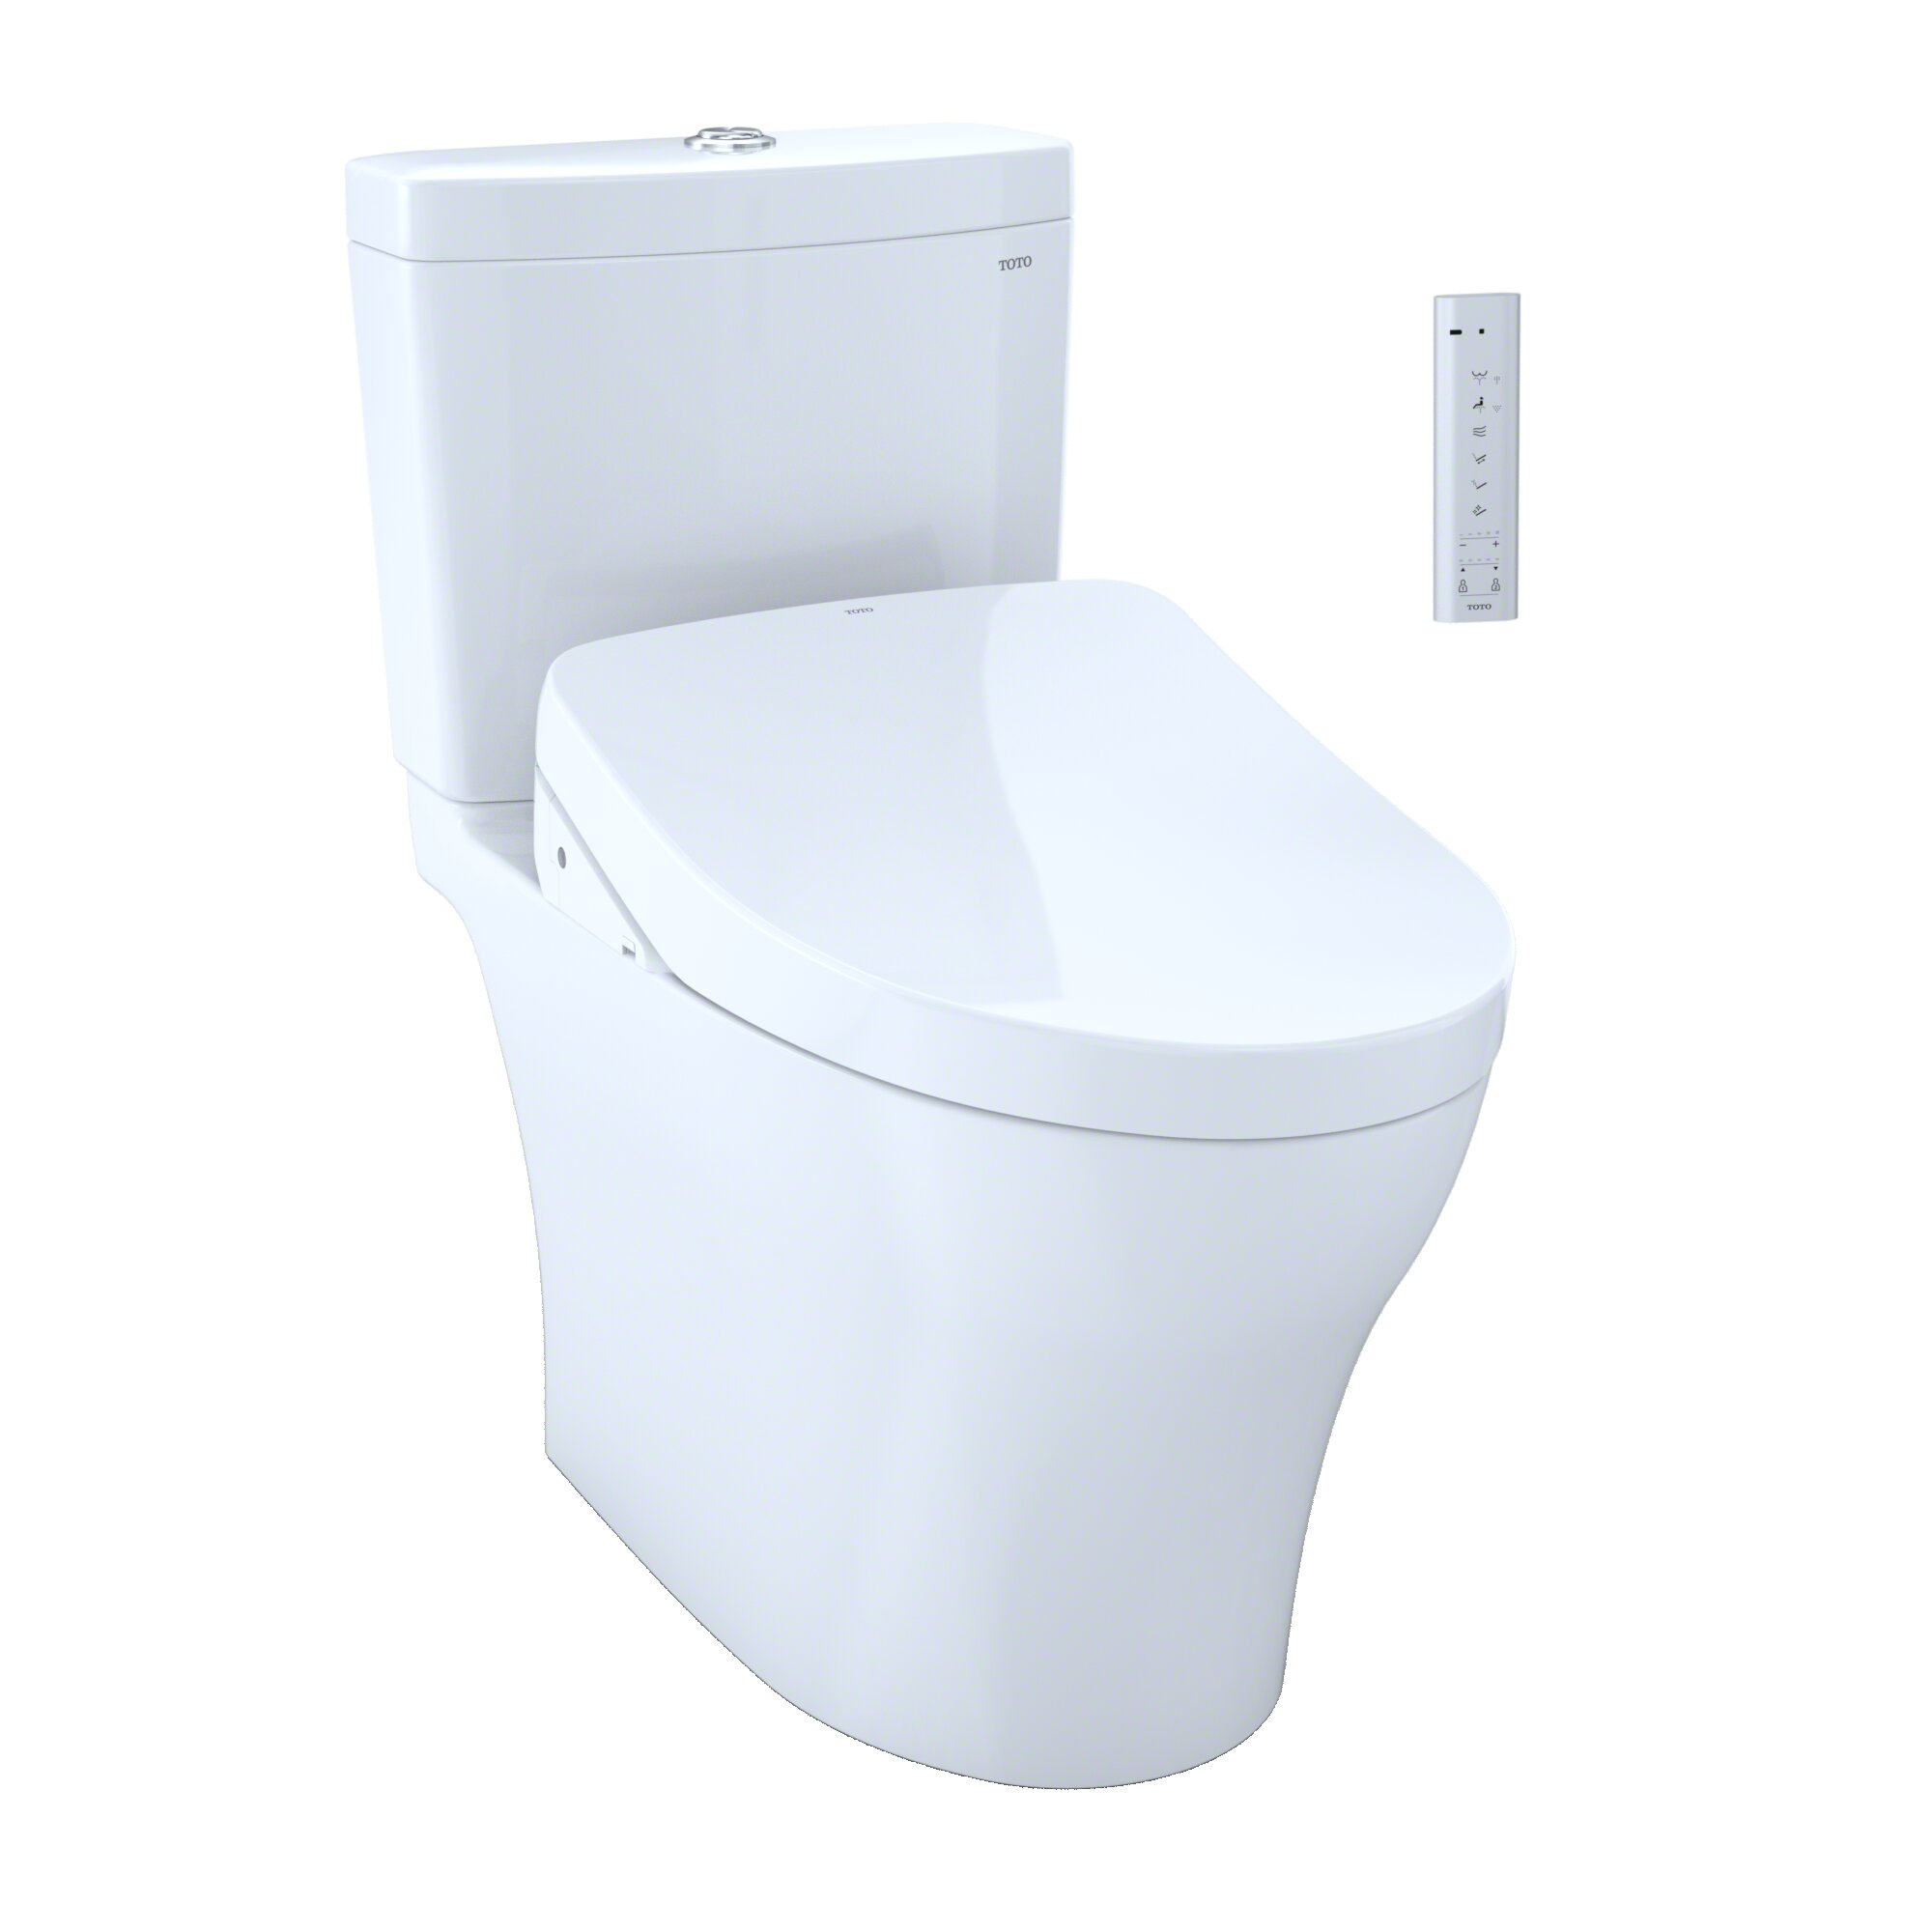 Toto Aquia IV Dual Flush Elongated Two-Piece Toilet with Ewater+ ...